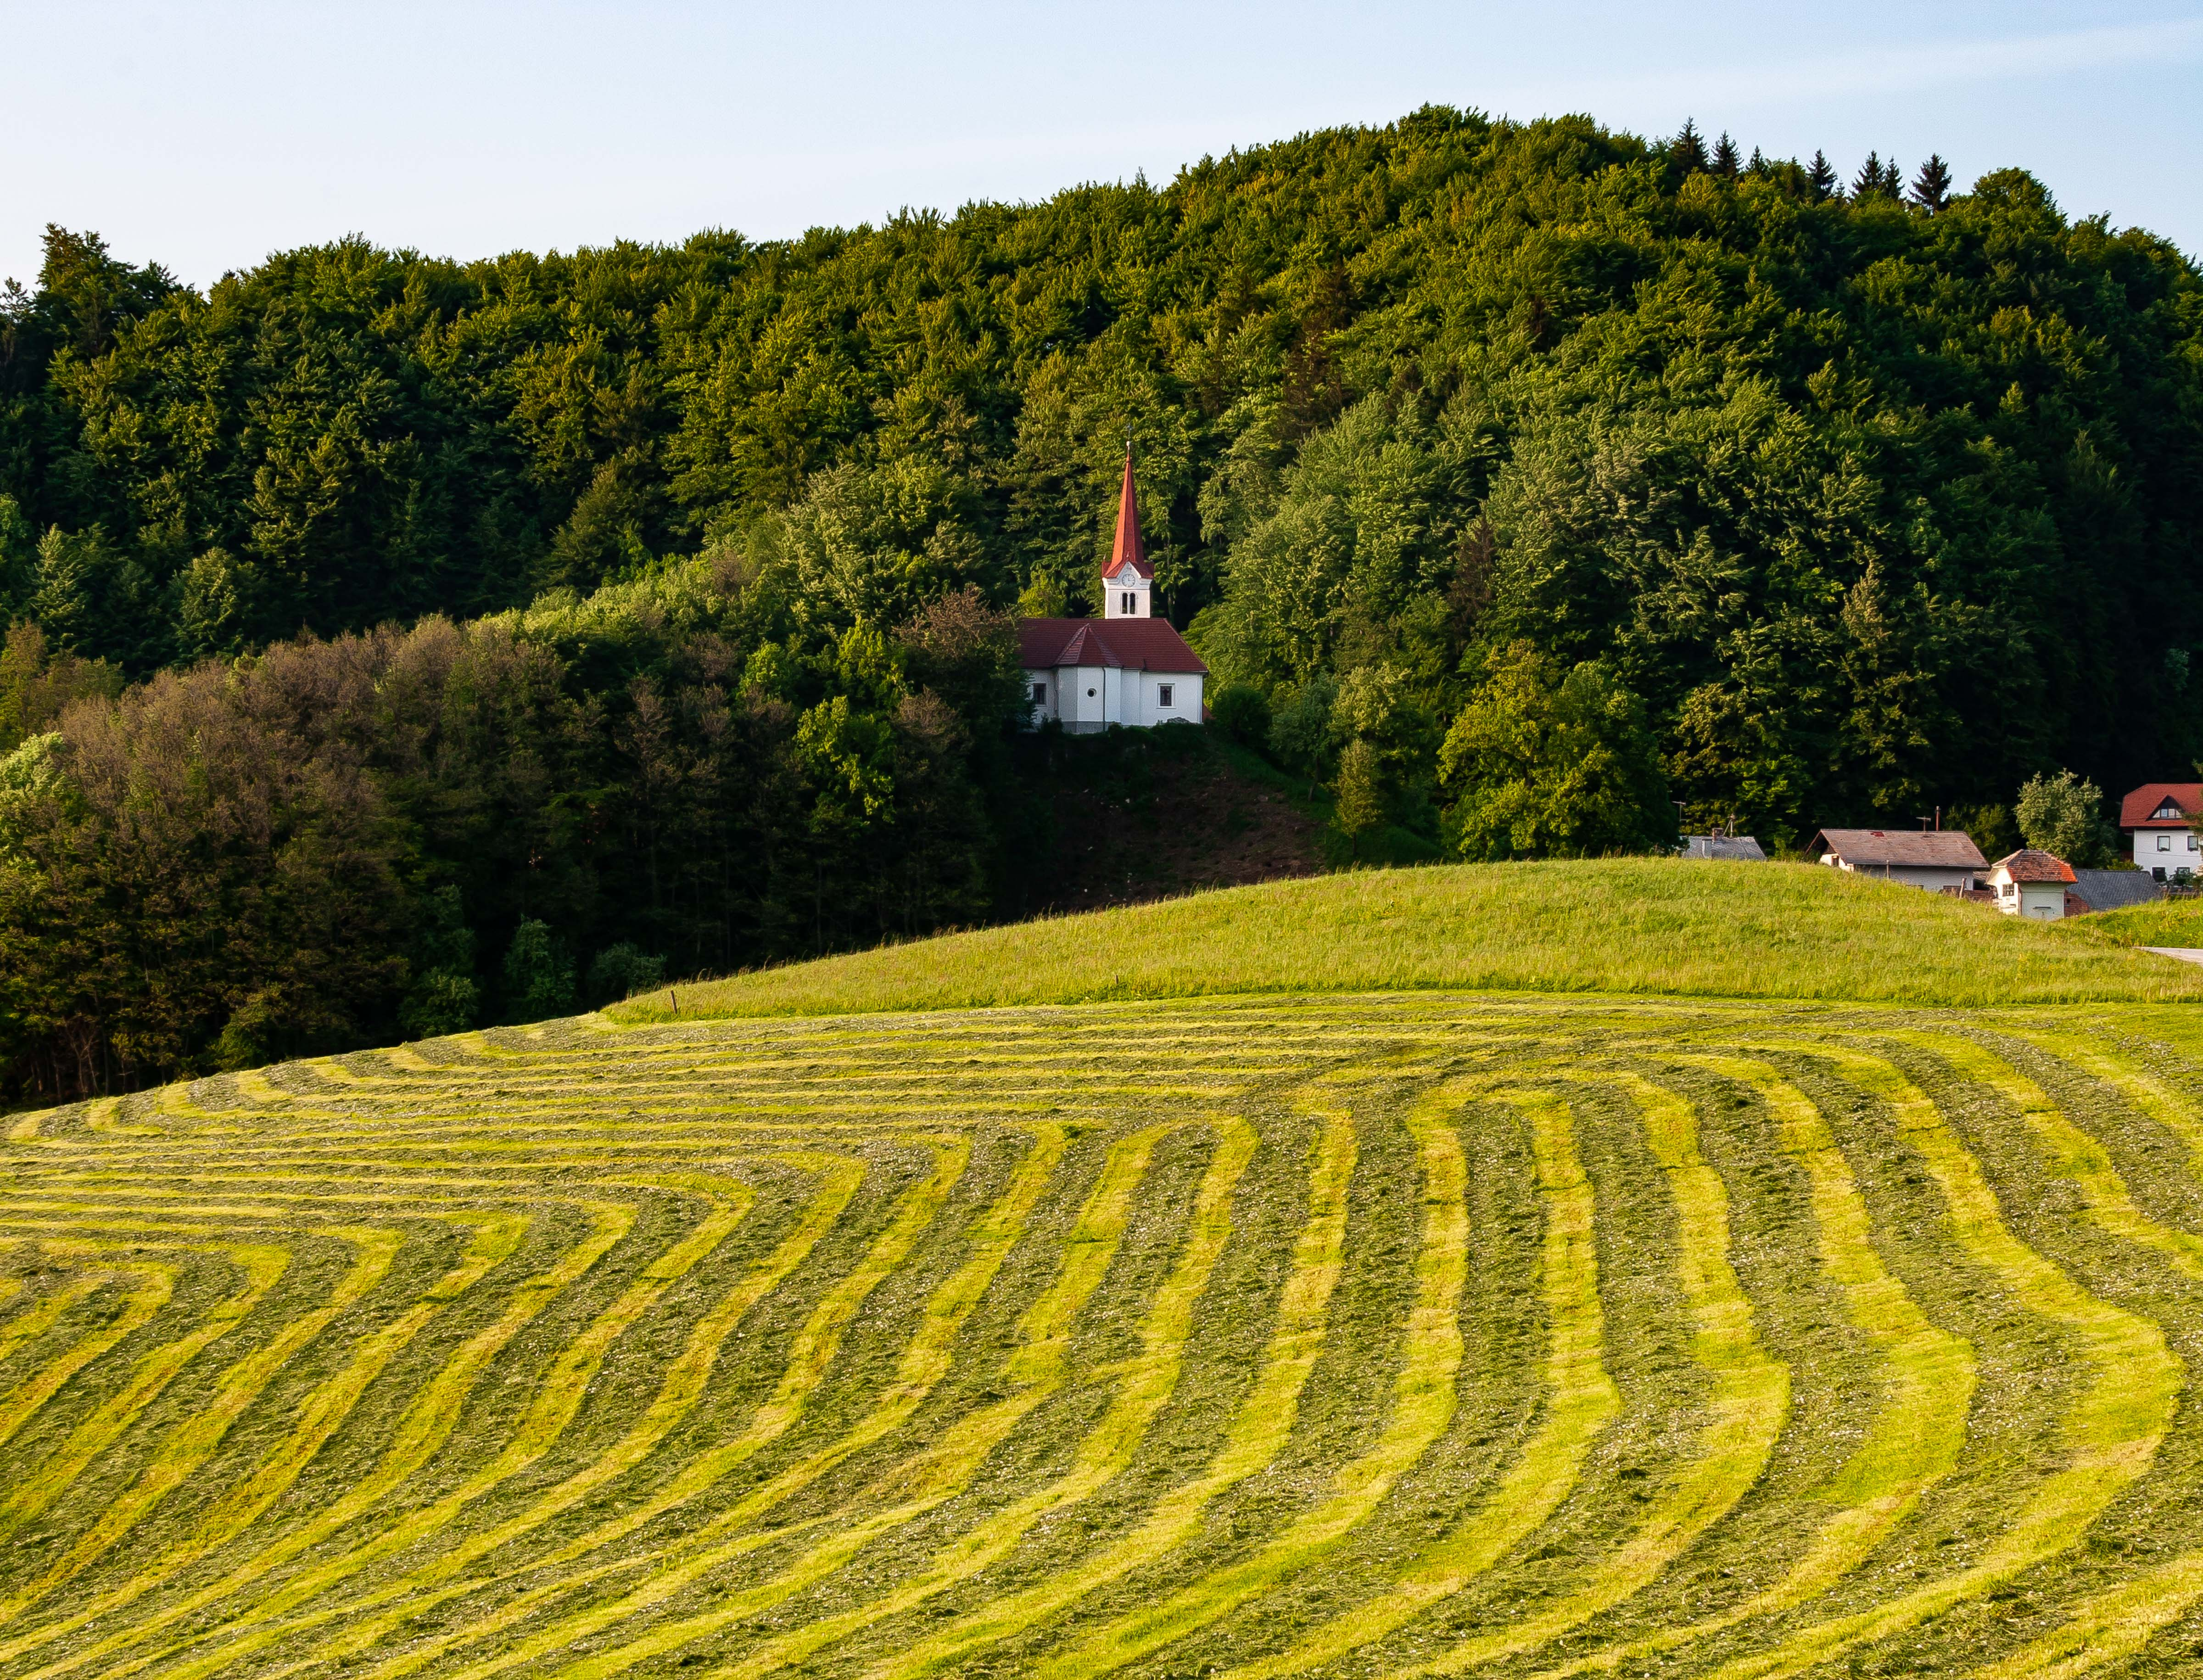 Slovenia, Zagorje Ob Savi Prov, Church And Striped Field, 2006, IMG 6161